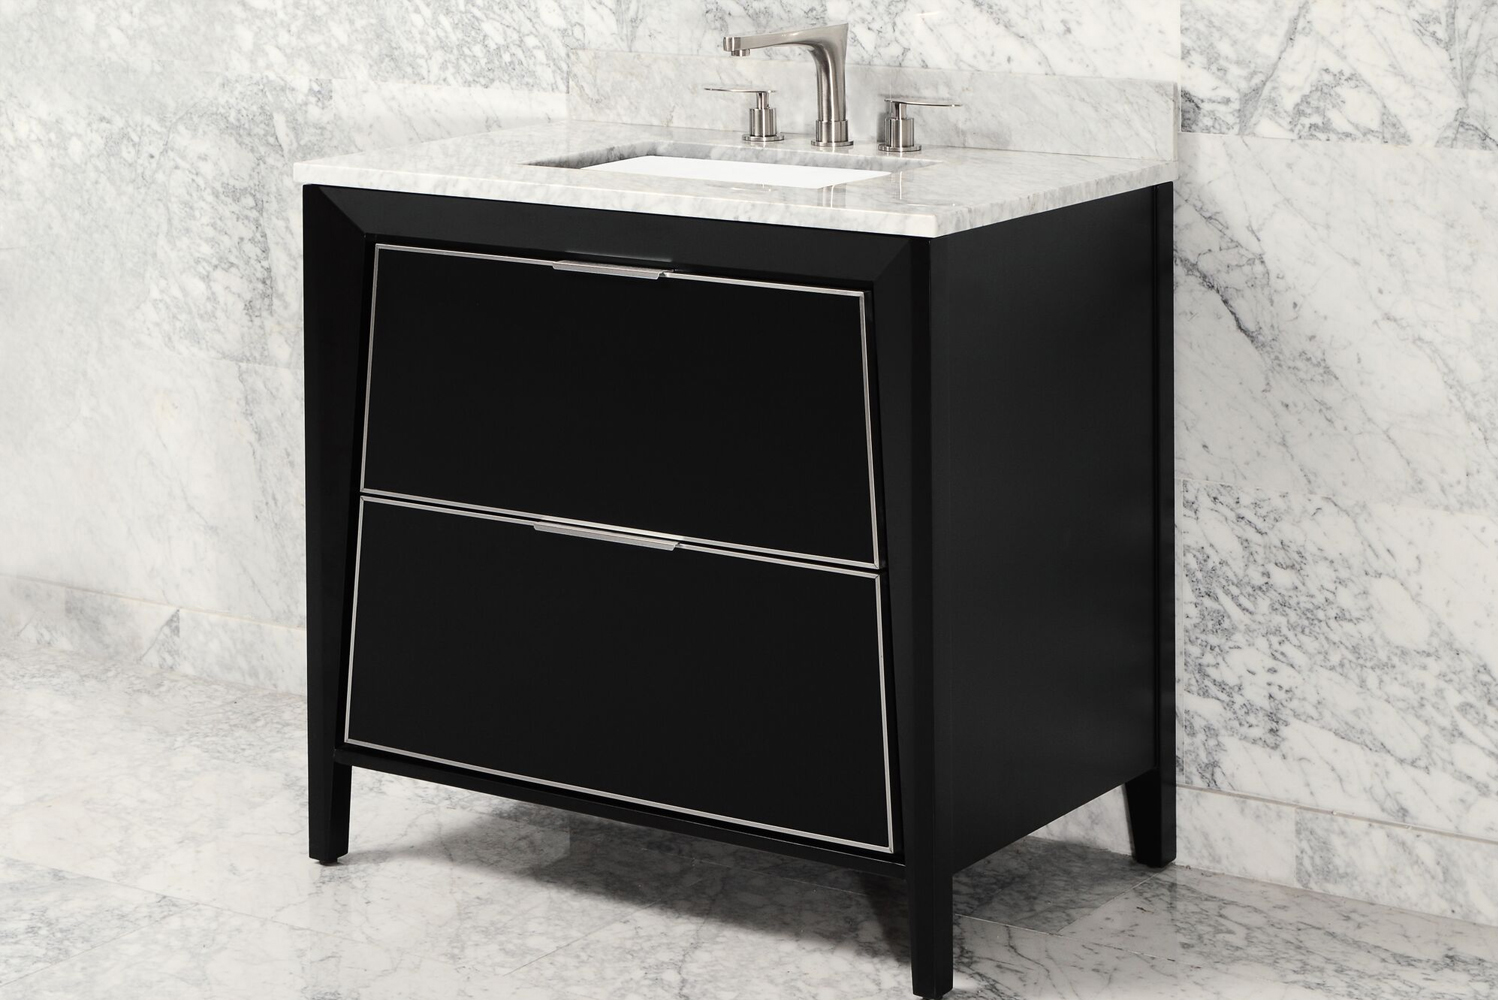 The minimalist Canto vanity is notable for its angled profile.